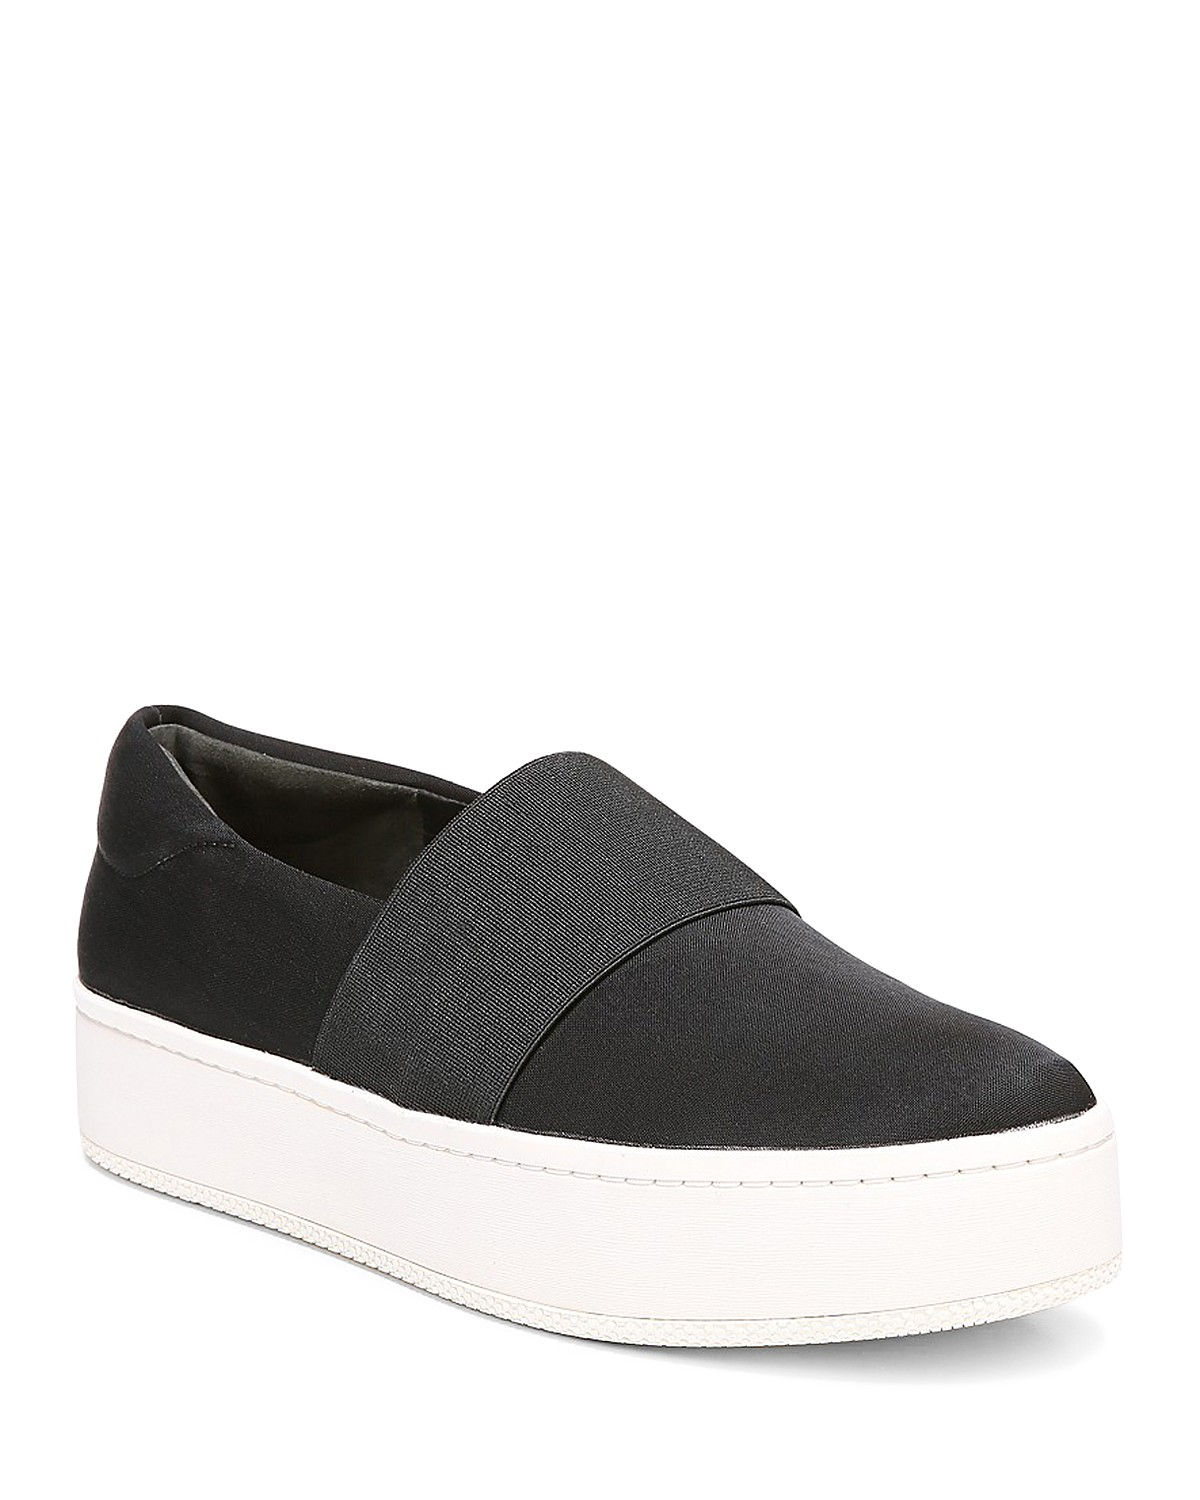 Cheap Sale Explore Via Spiga Women's Traynor Leather Slip-On Platform Sneakers Buy Cheap Low Shipping Fee Discount Classic Buy Cheap With Mastercard Best DE8mz4pqQd